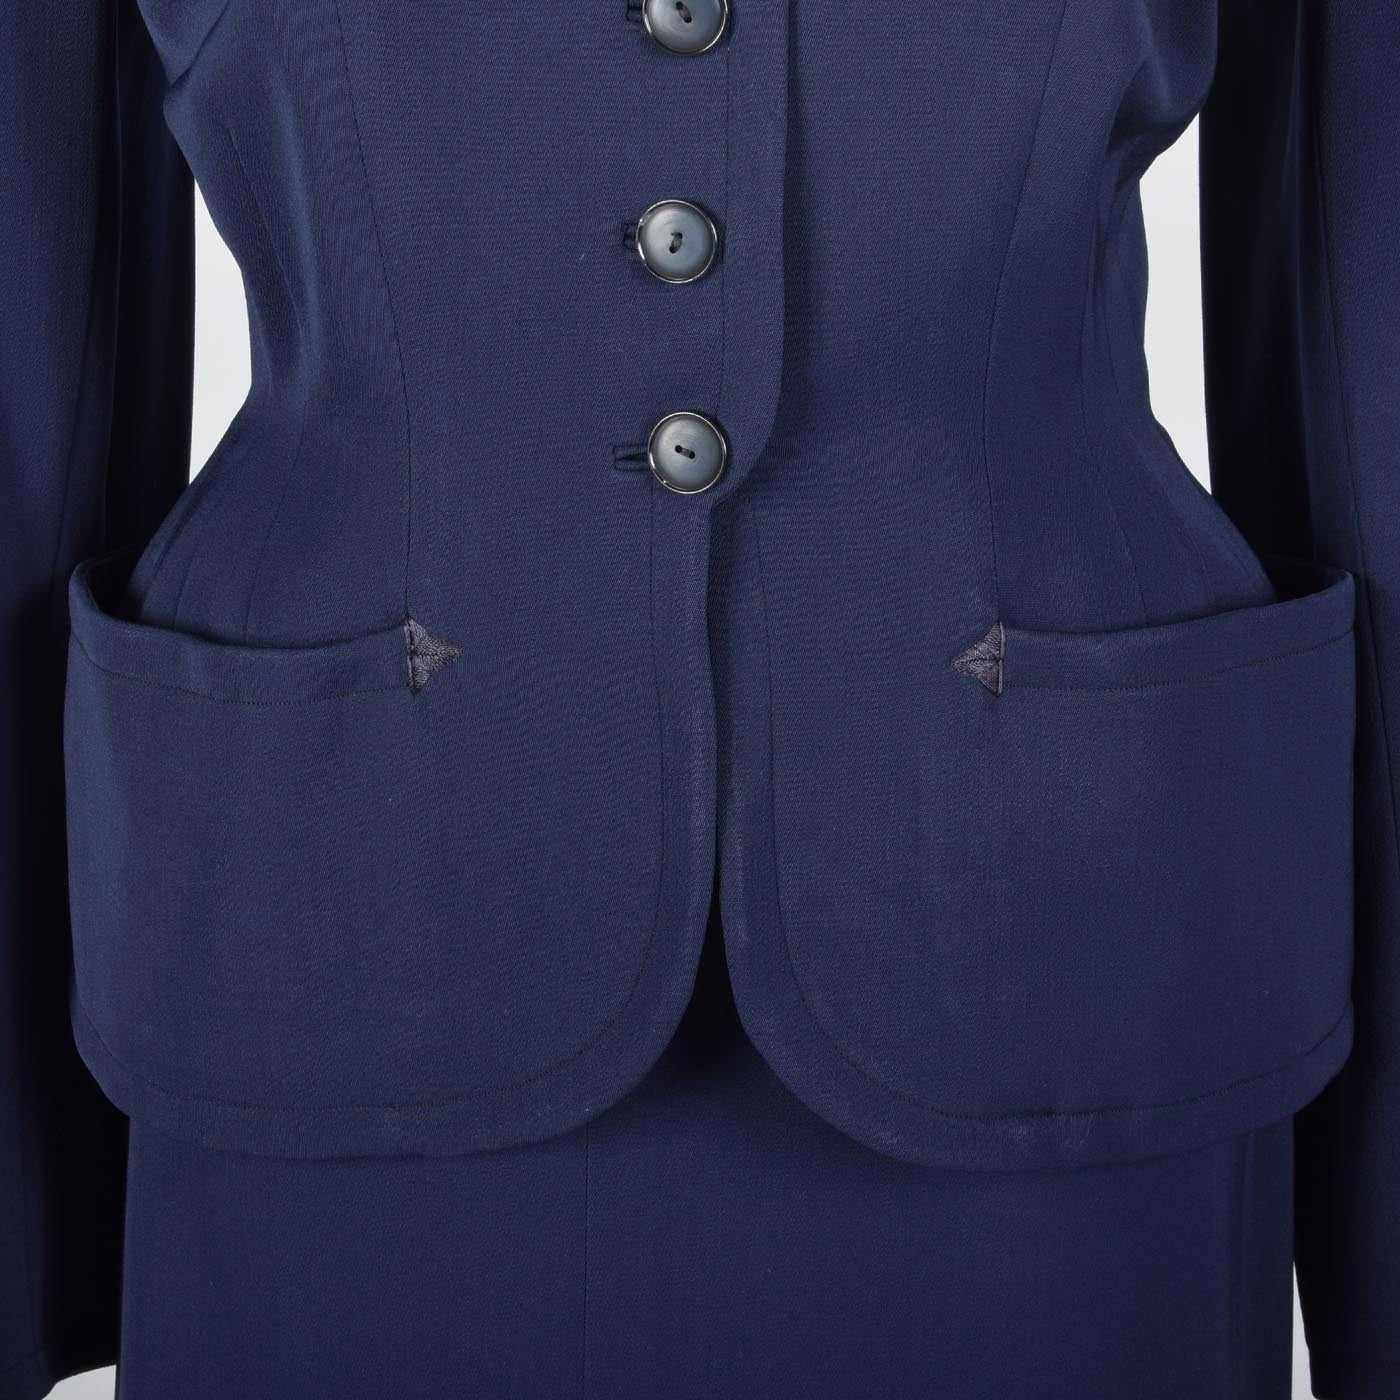 1950s Navy Blue Gabardine Skirt Suit with Shaped Hips & Weighted Hem